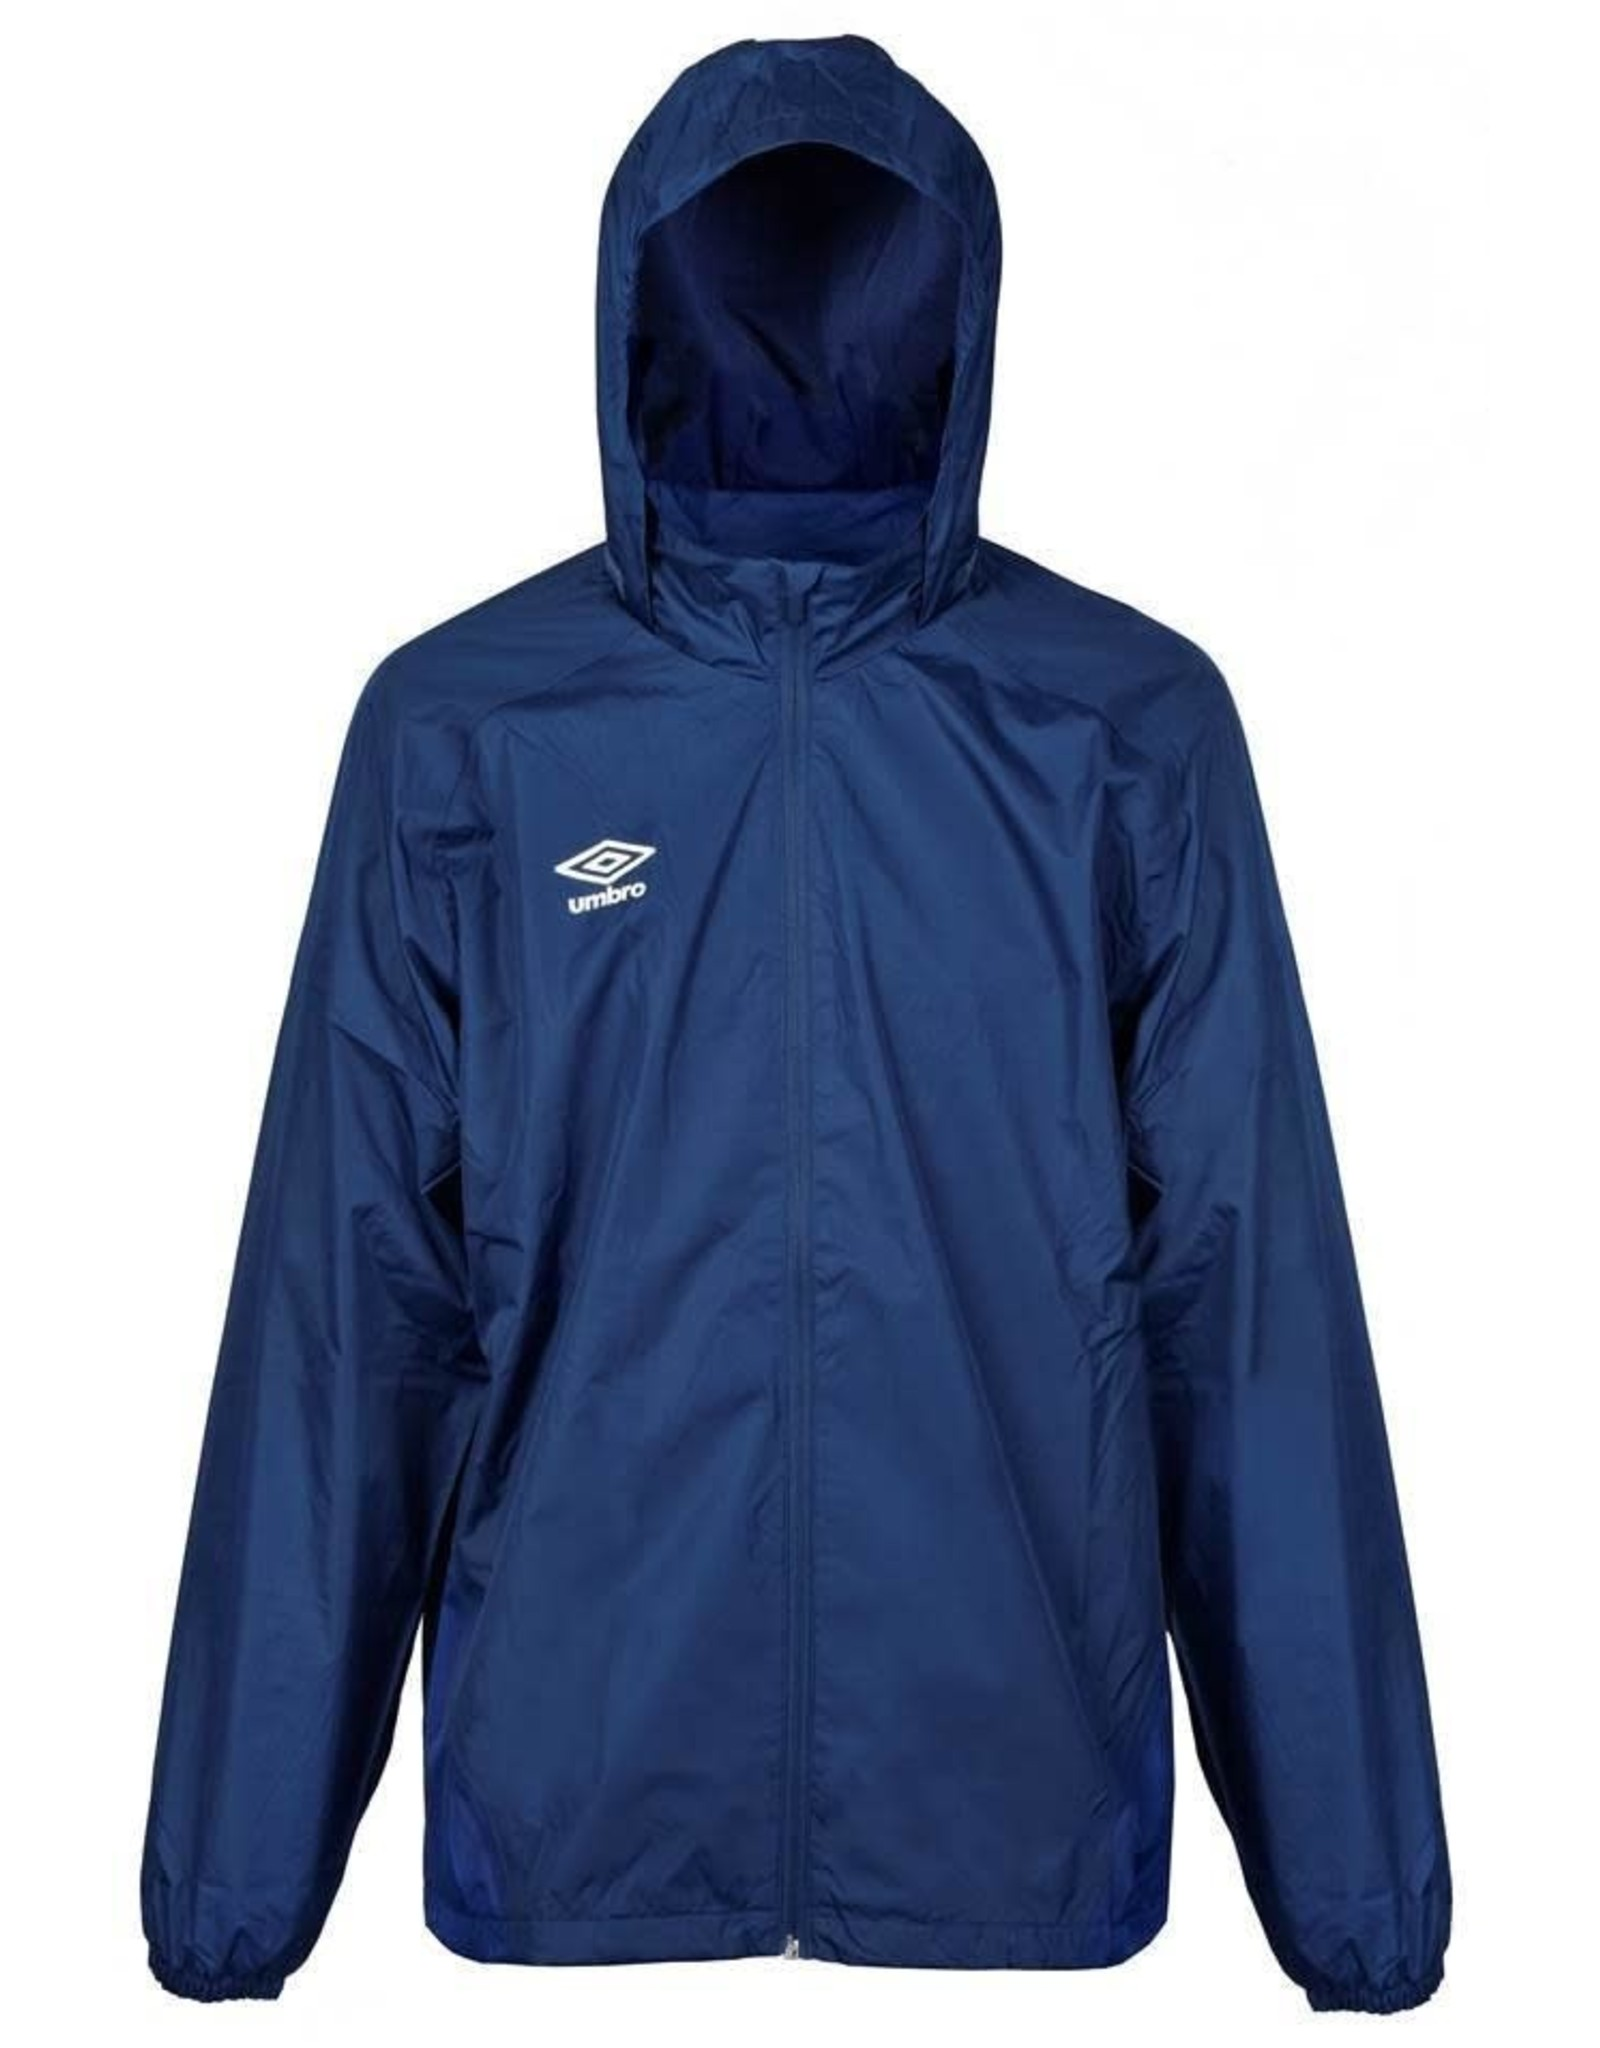 Umbro Umbro Junior Deluge Waterproof Jacket